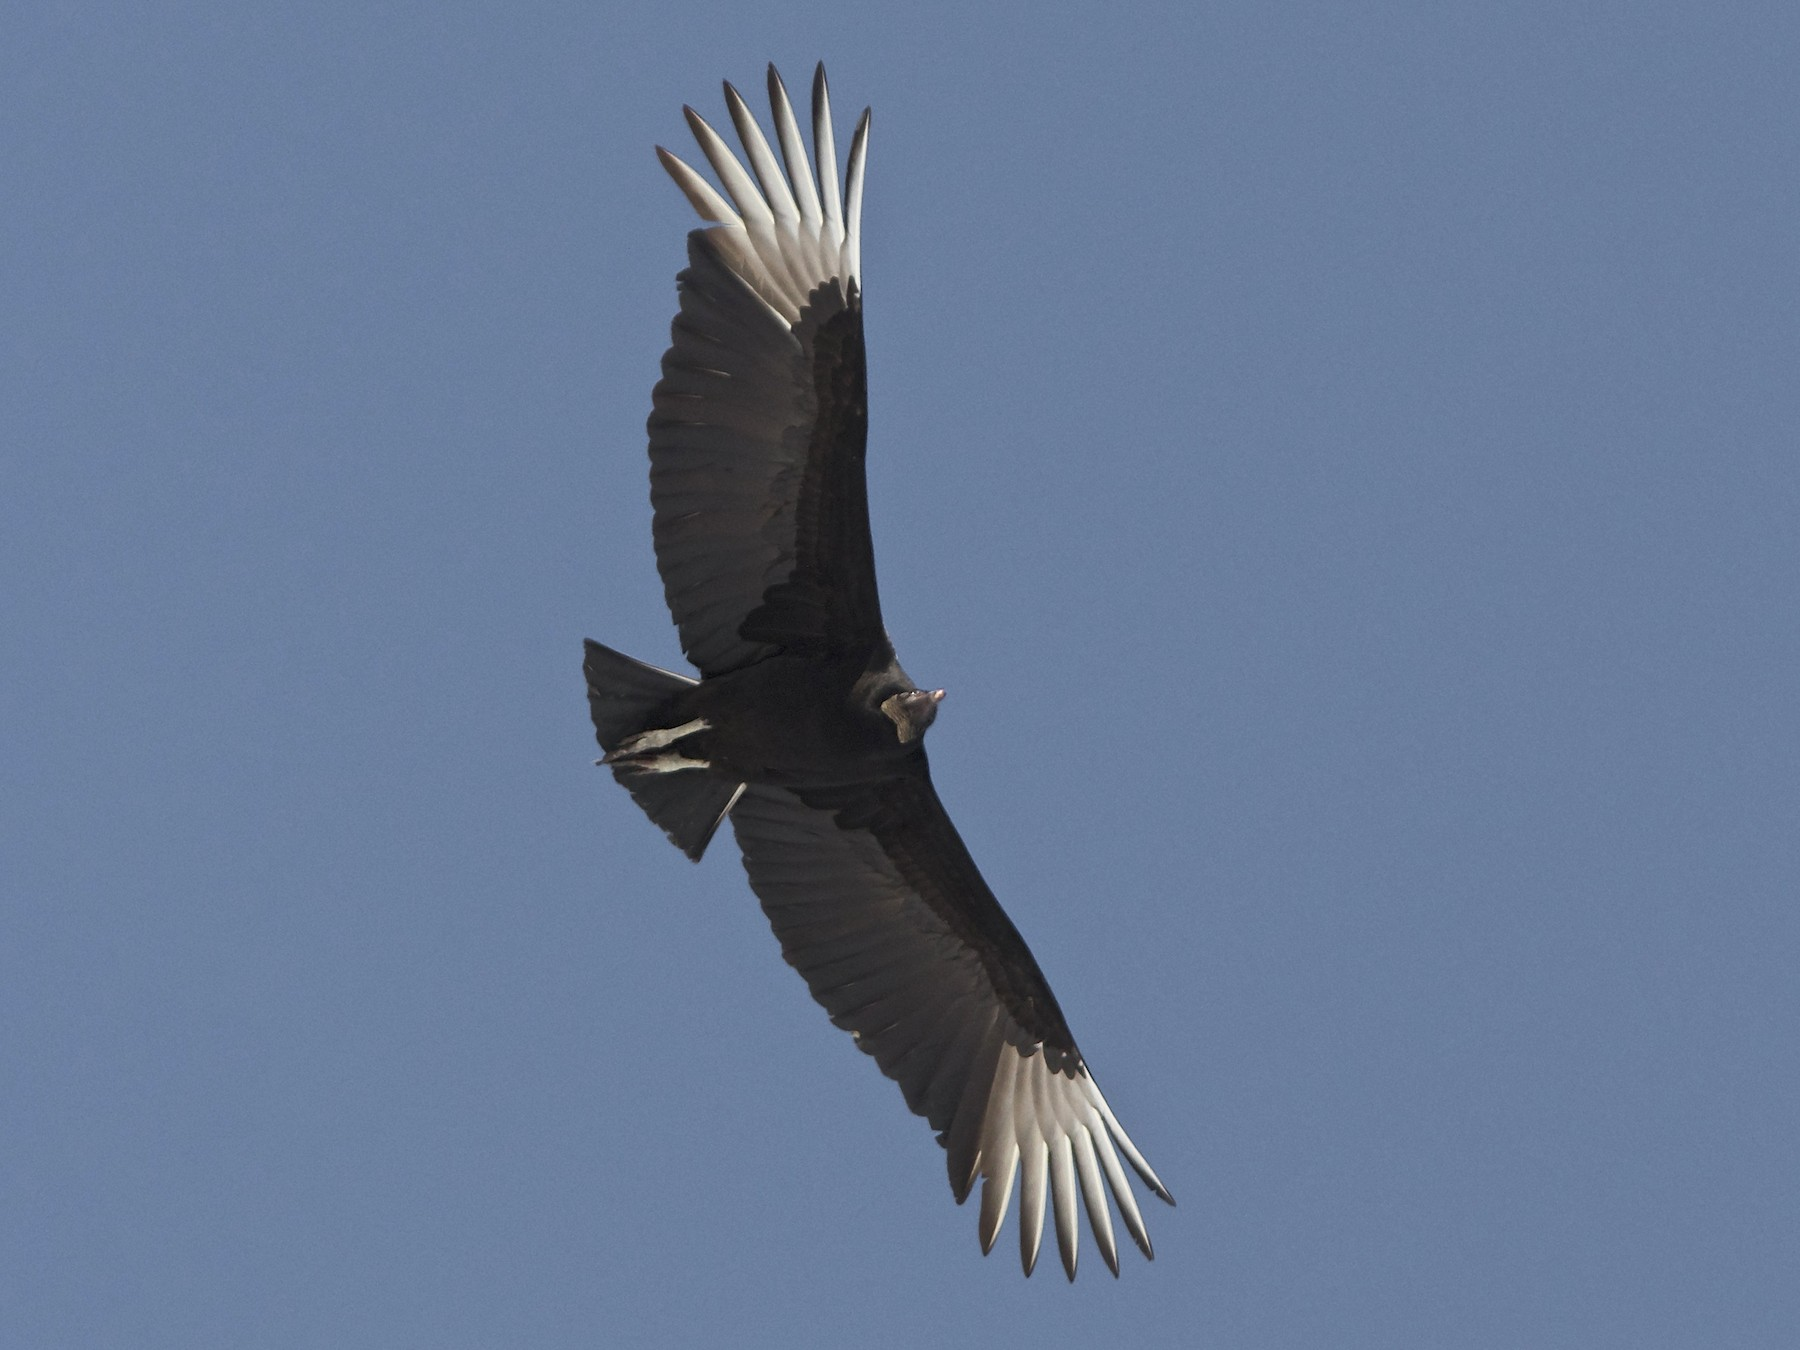 Black Vulture - Holly Merker